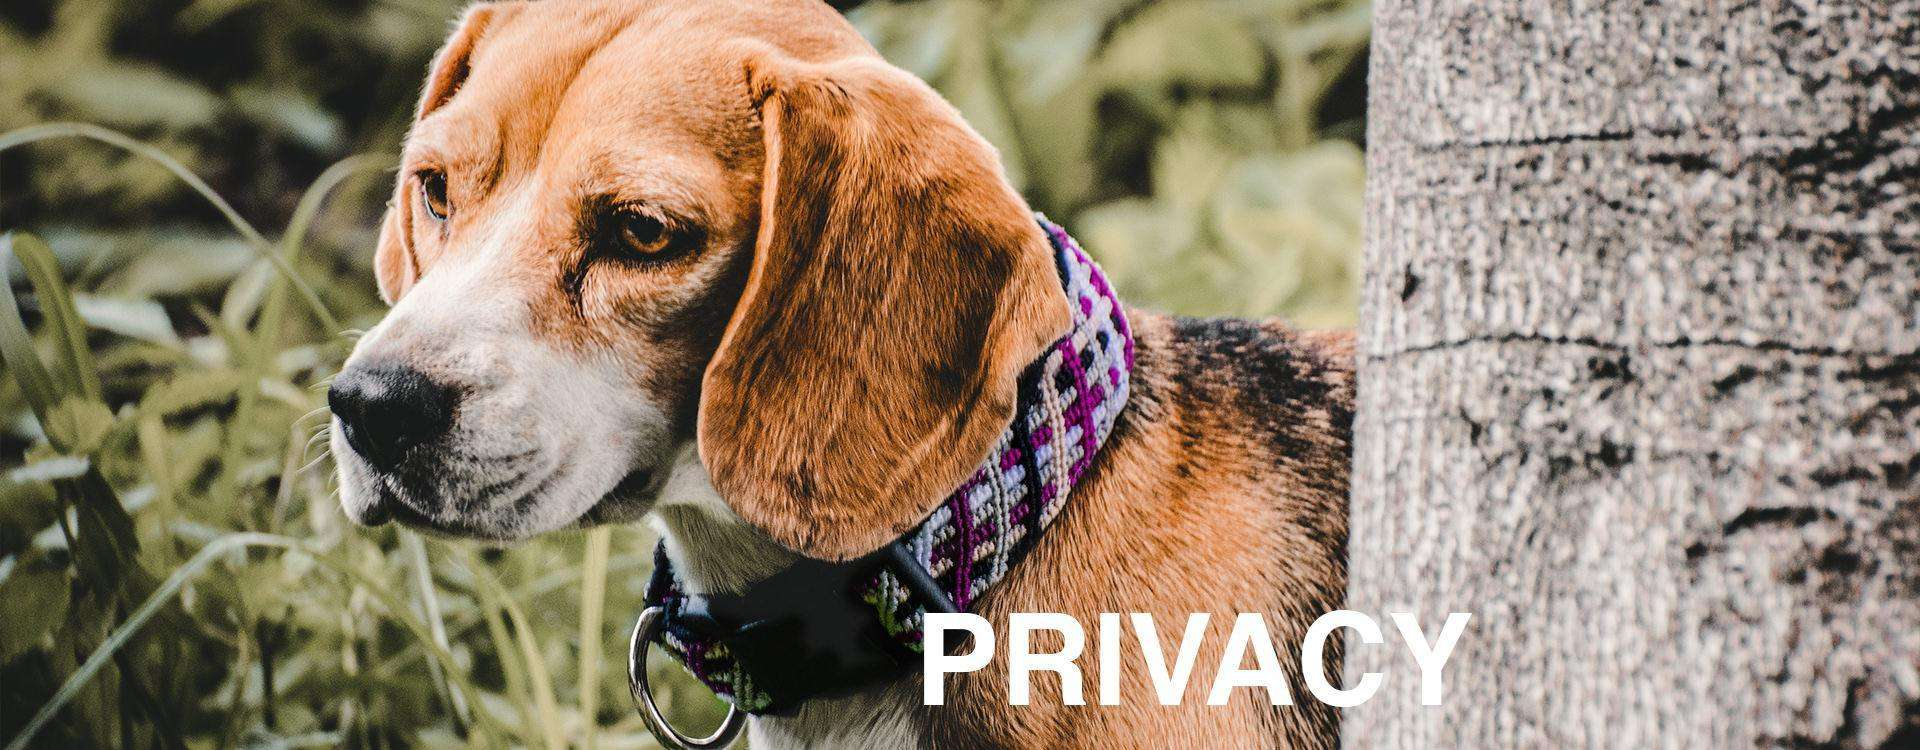 """Brown and white dog stands about tall grass and hides beside tree with overlaid text: """"PRIVACY"""""""